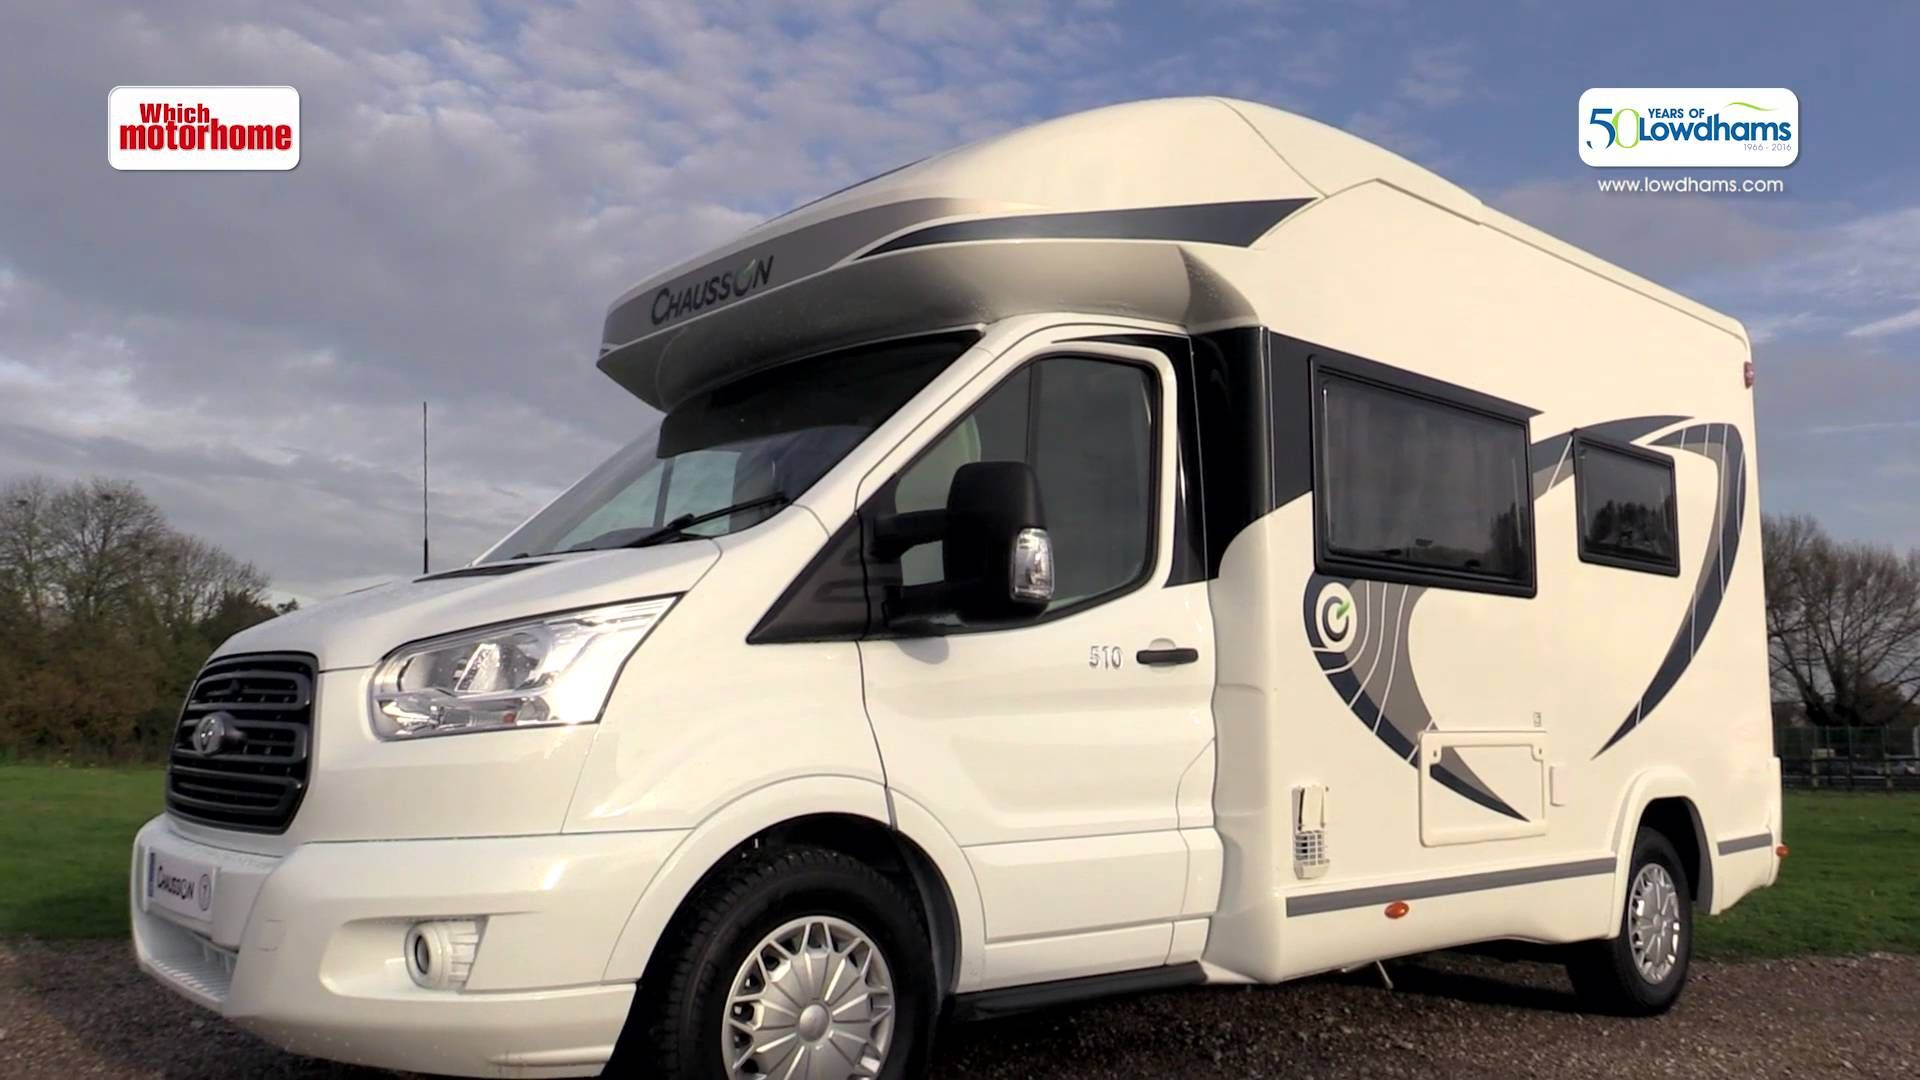 6 Metre Motorhome Showdown Free Dvd With Which Motorhome Magazine